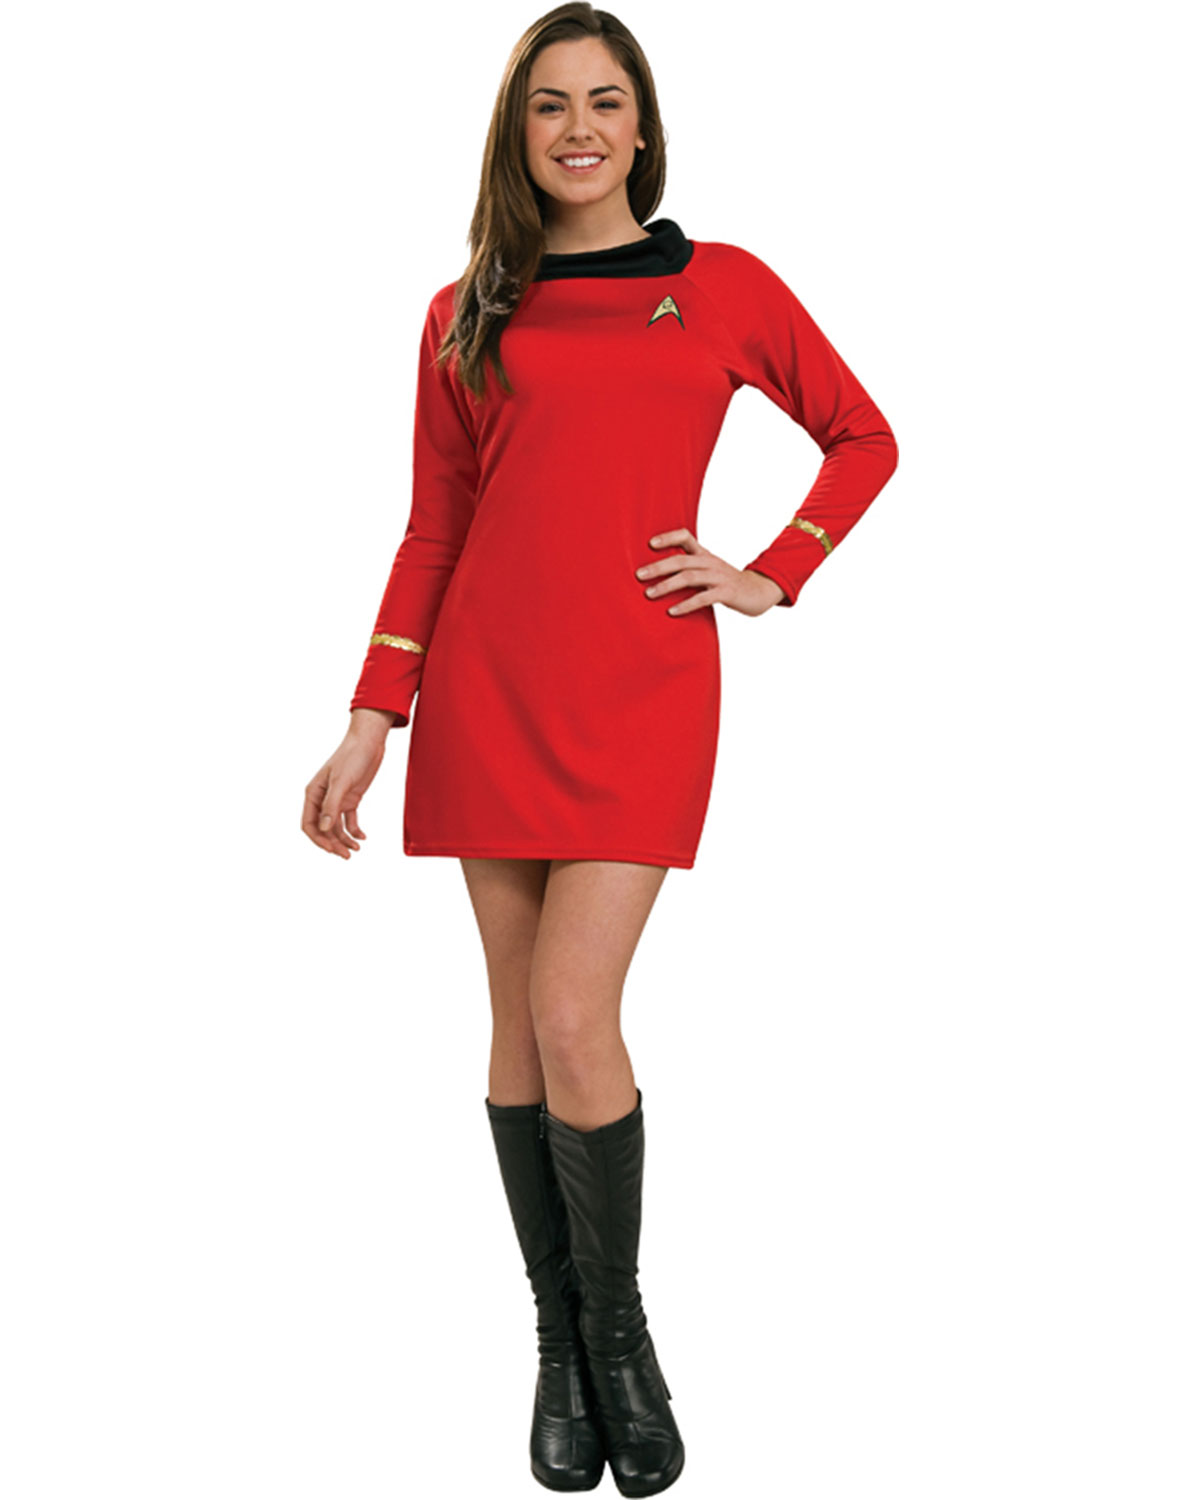 Details about Morris Costumes Women's Tv & Movie Characters Star Trek Dress Red XS. RU889061XS